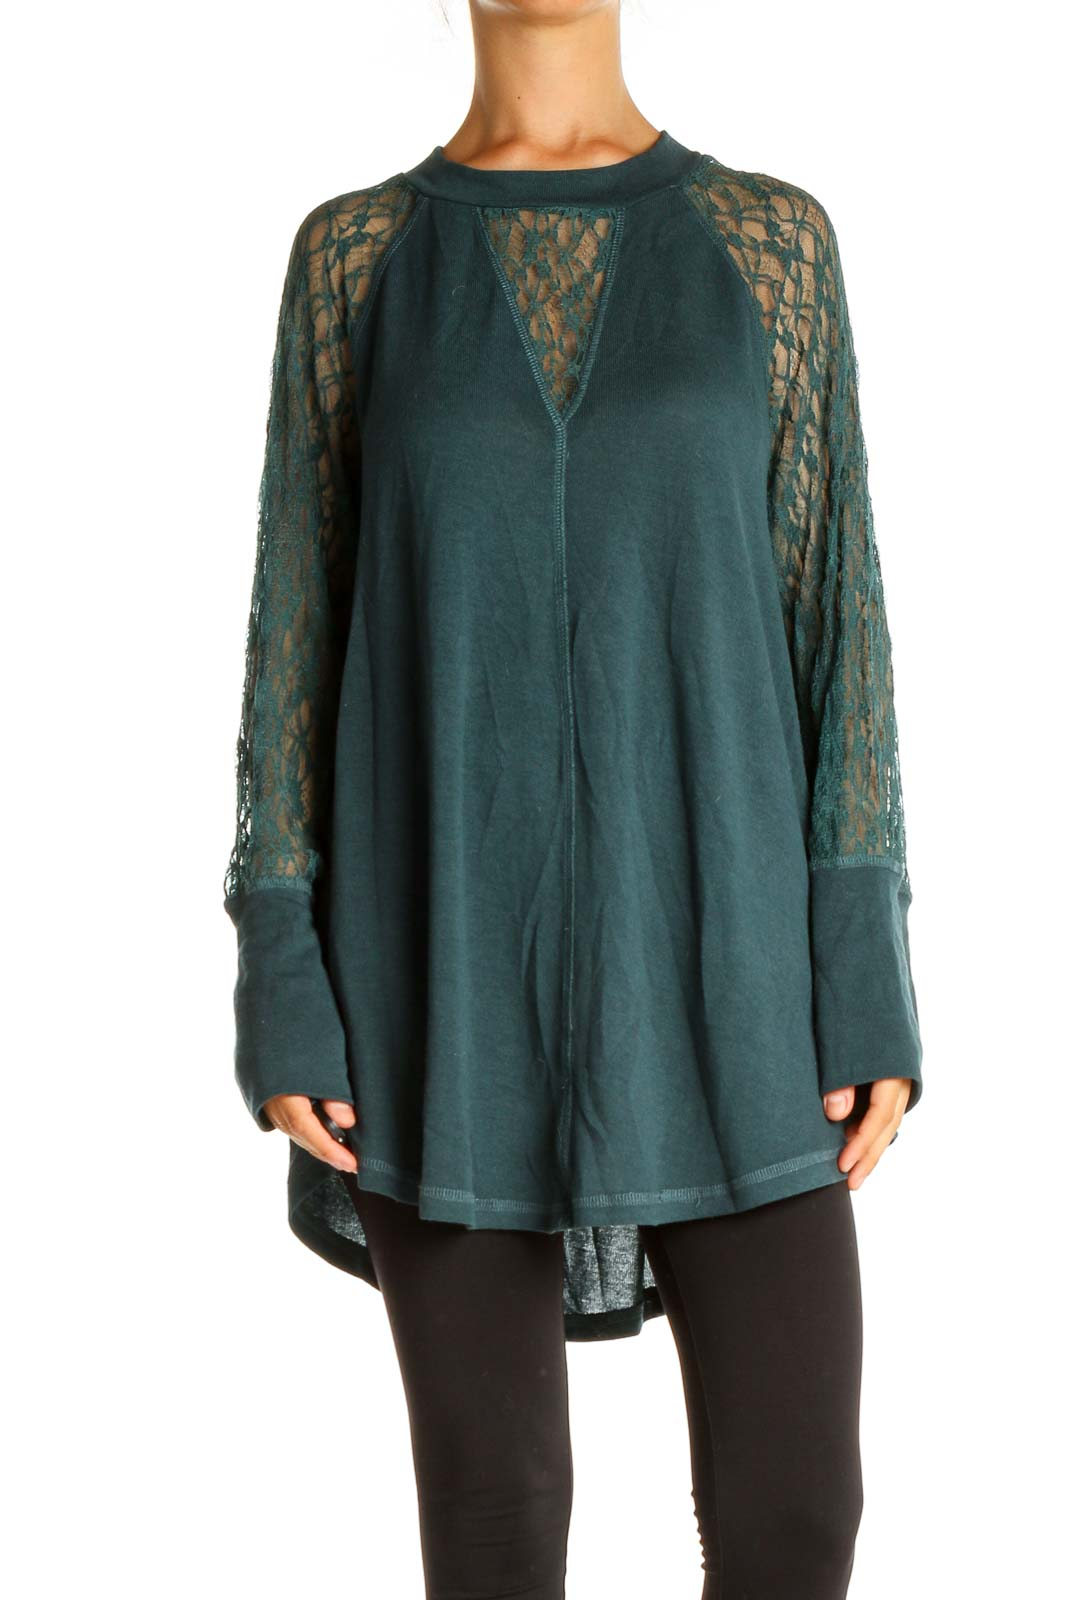 Green Lace Retro Blouse Front